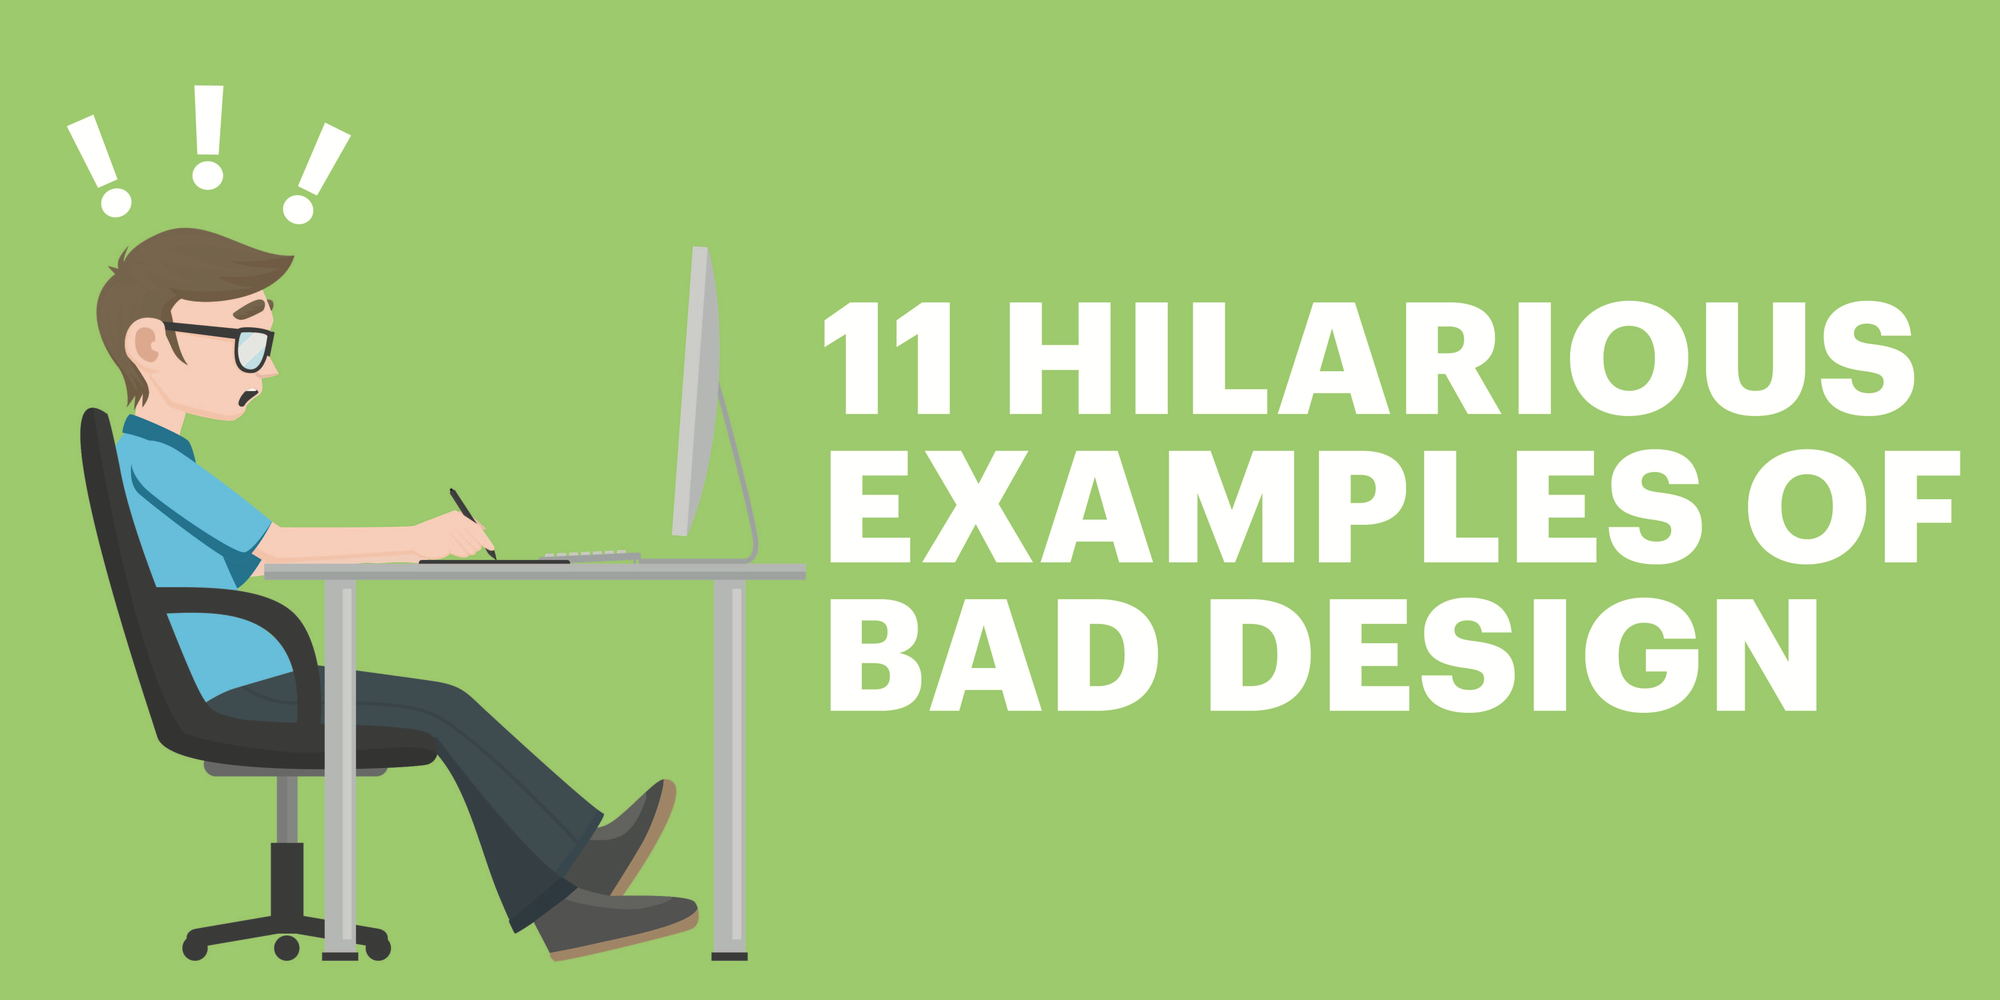 11 hilarious examples of bad design lucidpress for Bad in design